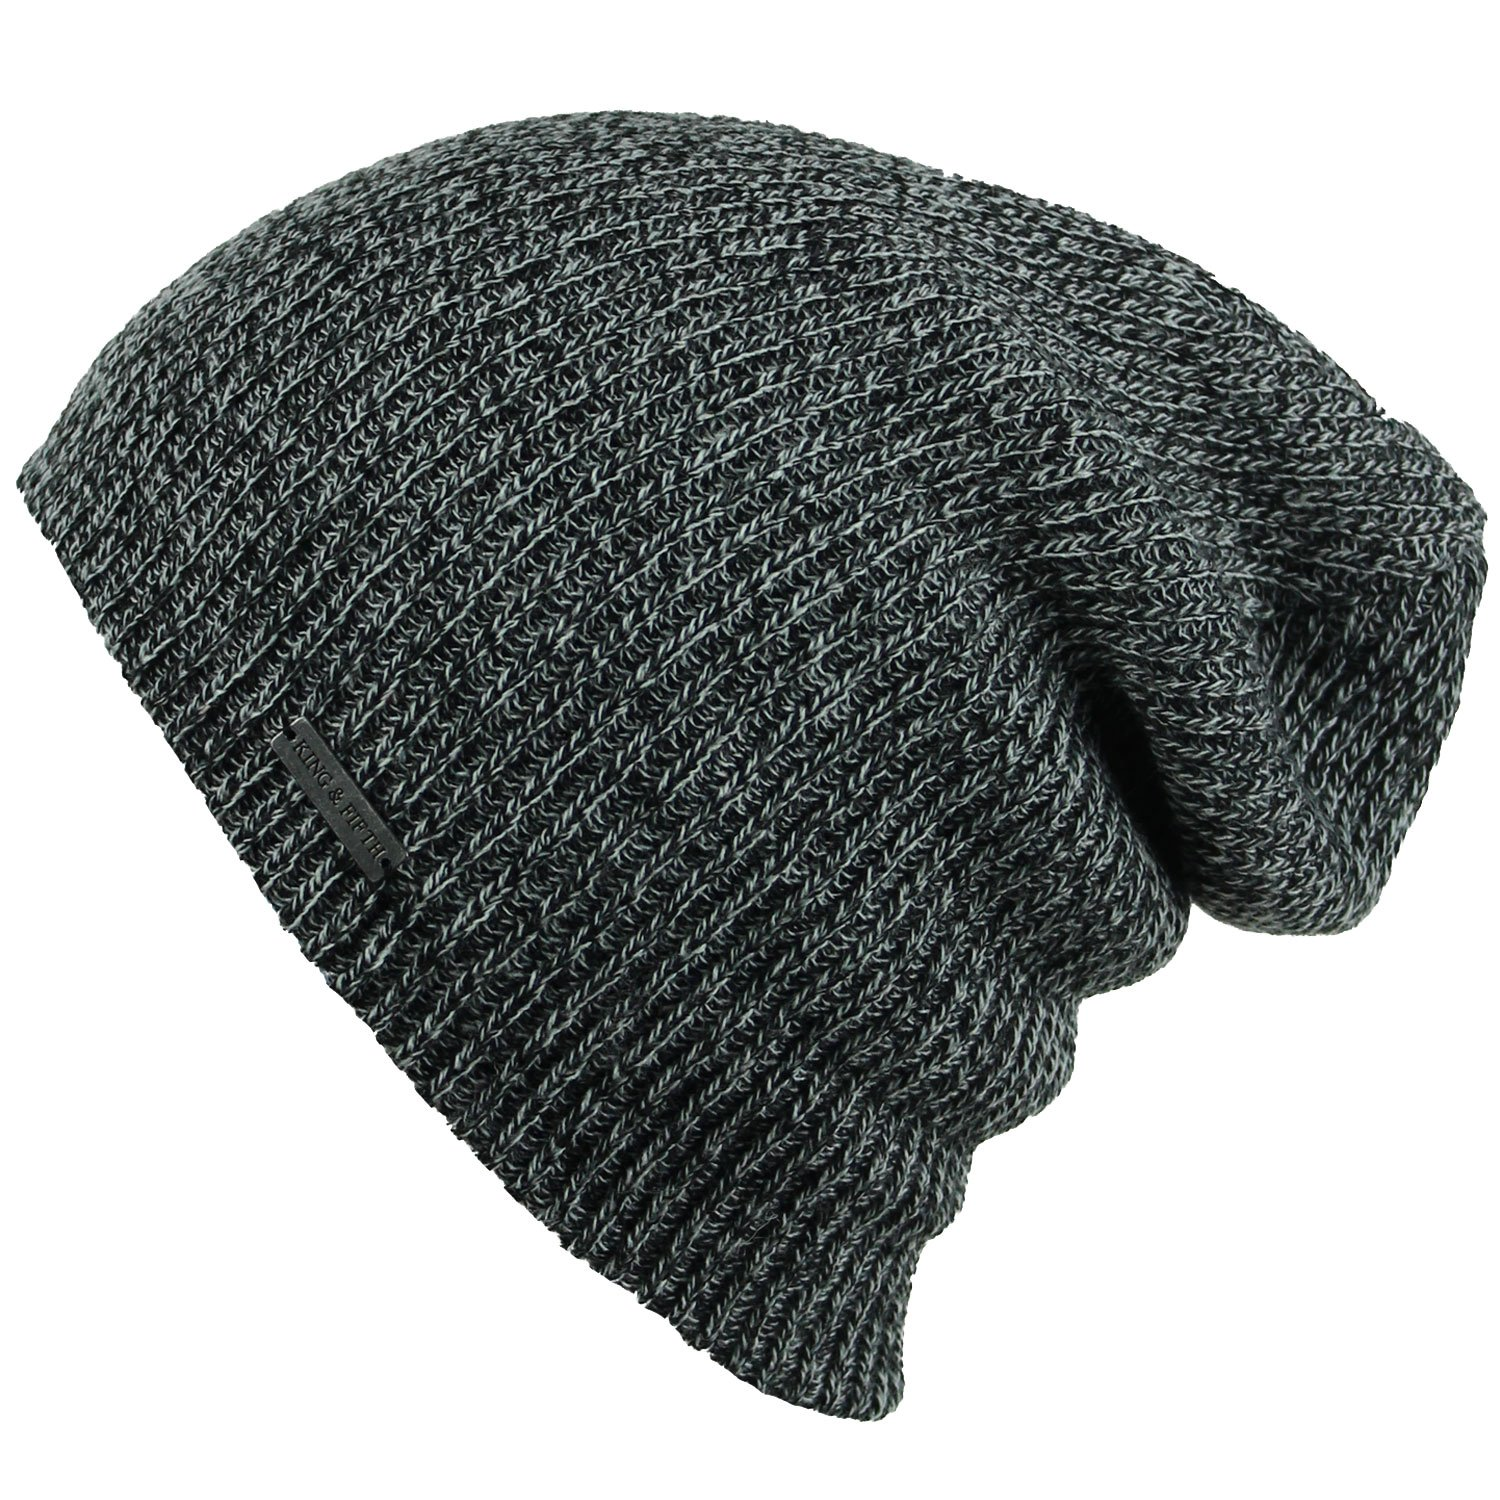 d5160869a963ac Slouchy Beanie for Men & Women by King & Fifth | Premium Quality Beanie Hat  + Warm Winter Hat + Beanie (Black NEP) at Amazon Men's Clothing store: